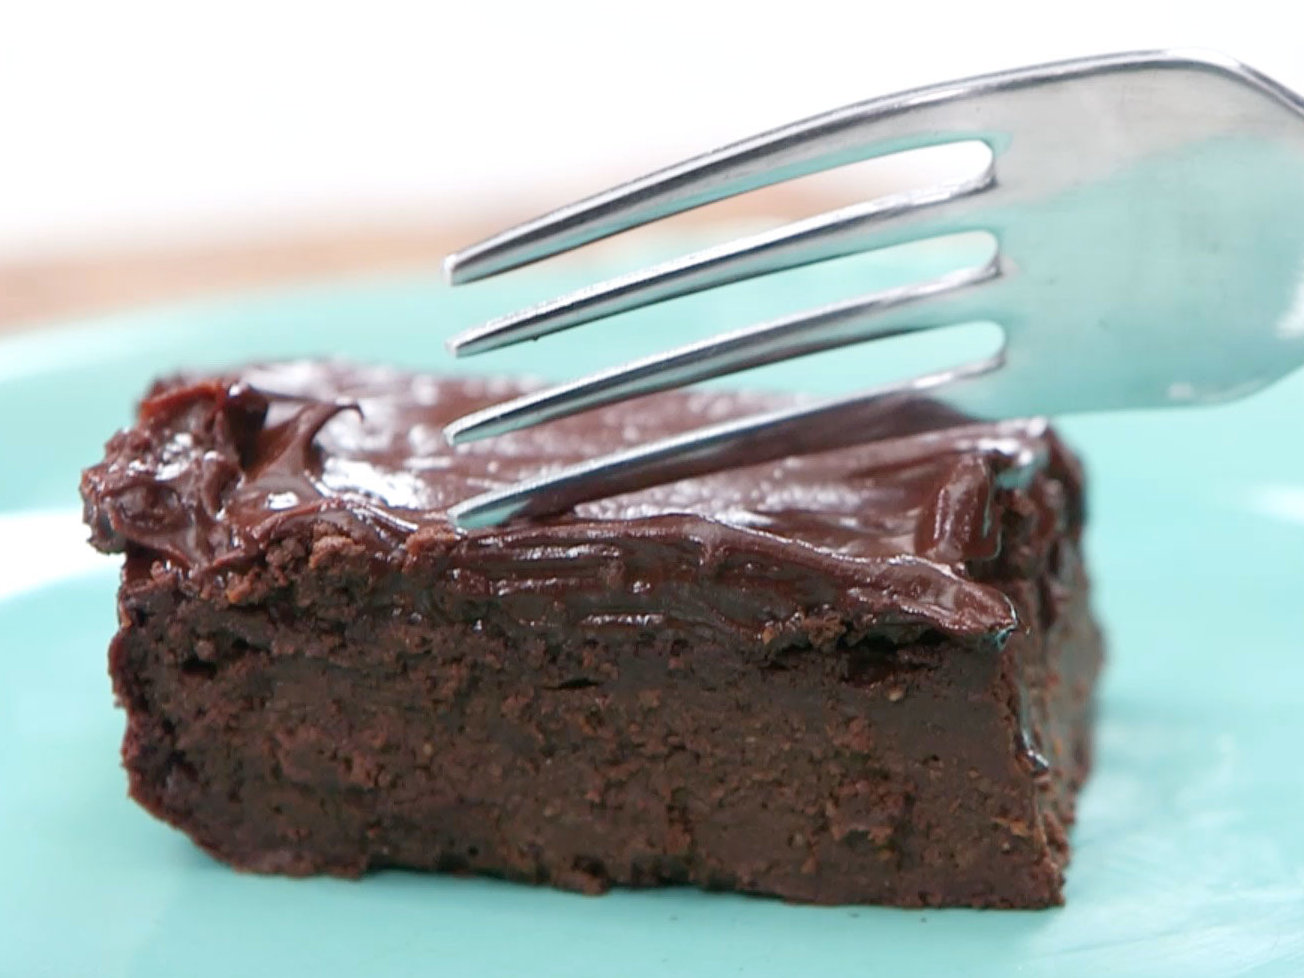 How to Make Avocado-Chocolate Frosting - Health